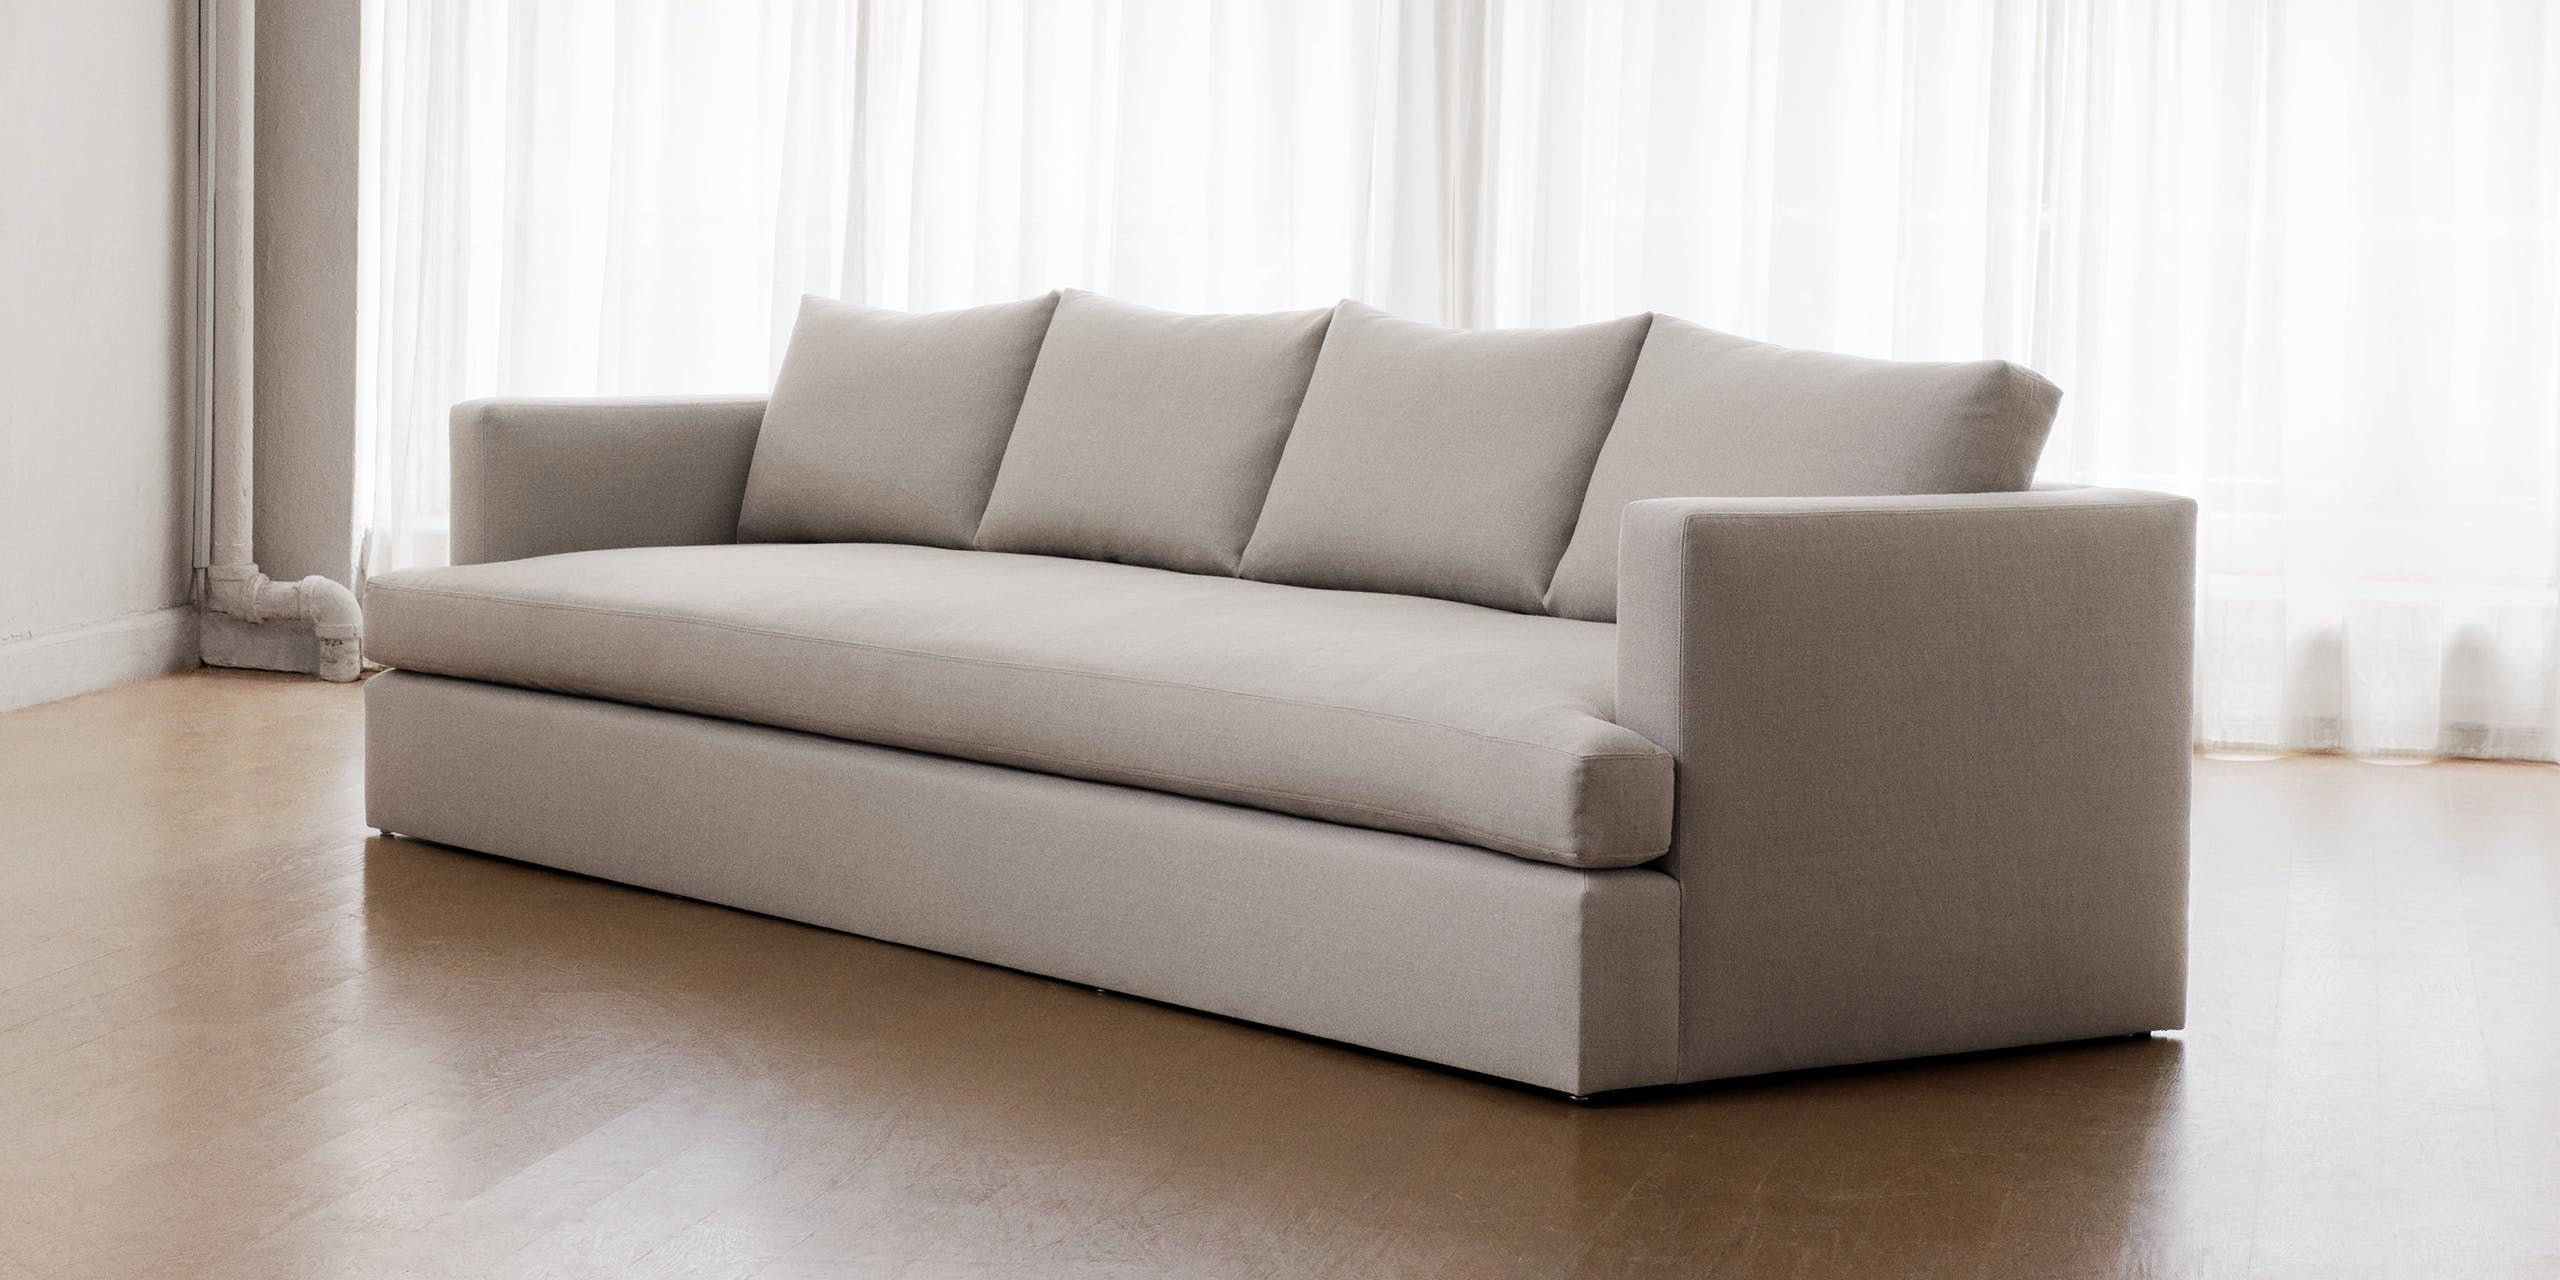 Chelsea Square Sofa Leather Fabric Sofas Wowcher Sectional Wdf Contemporary Williams Loughead Residence Pinterest Squares